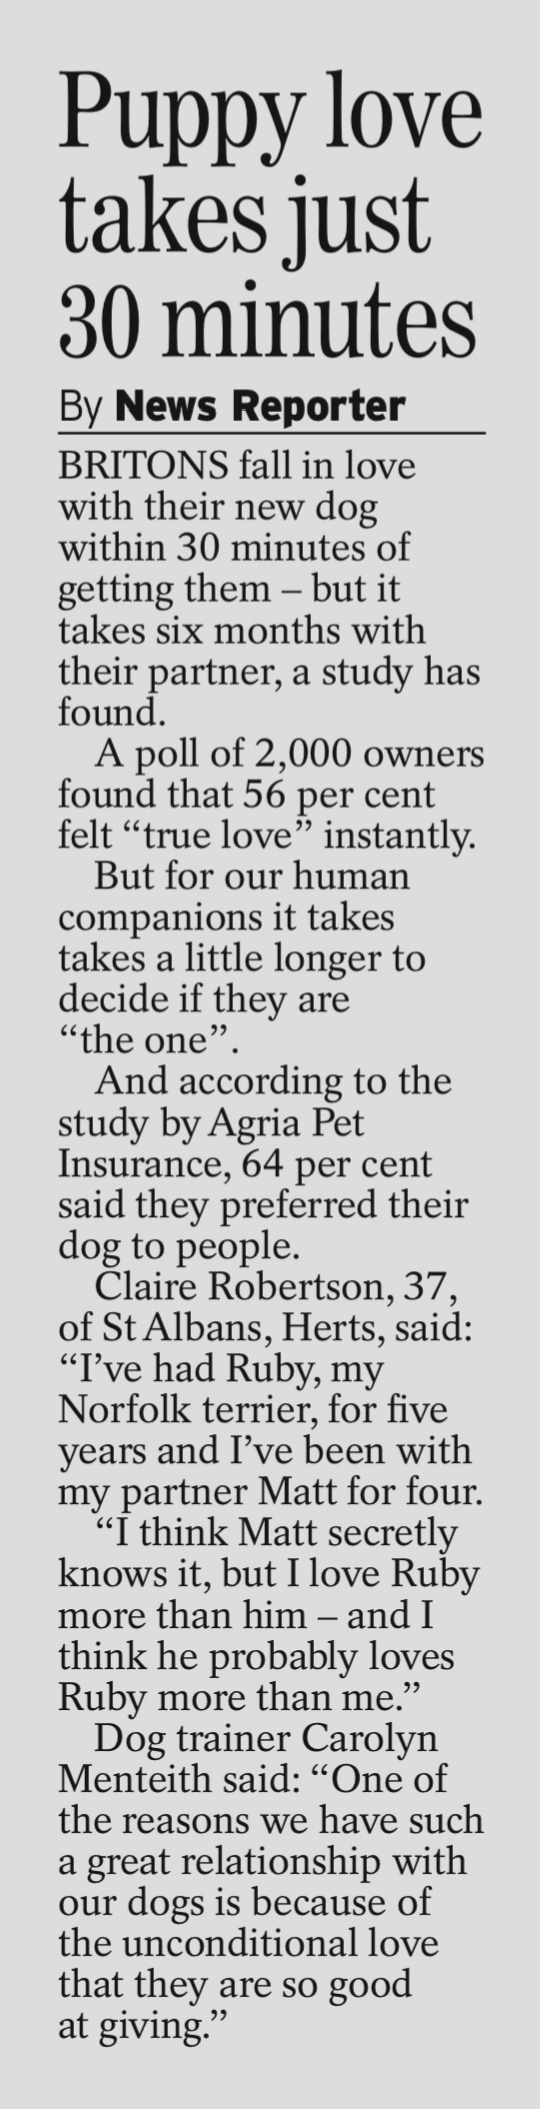 COVERAGE FOR AGRIA PET INSURANCE